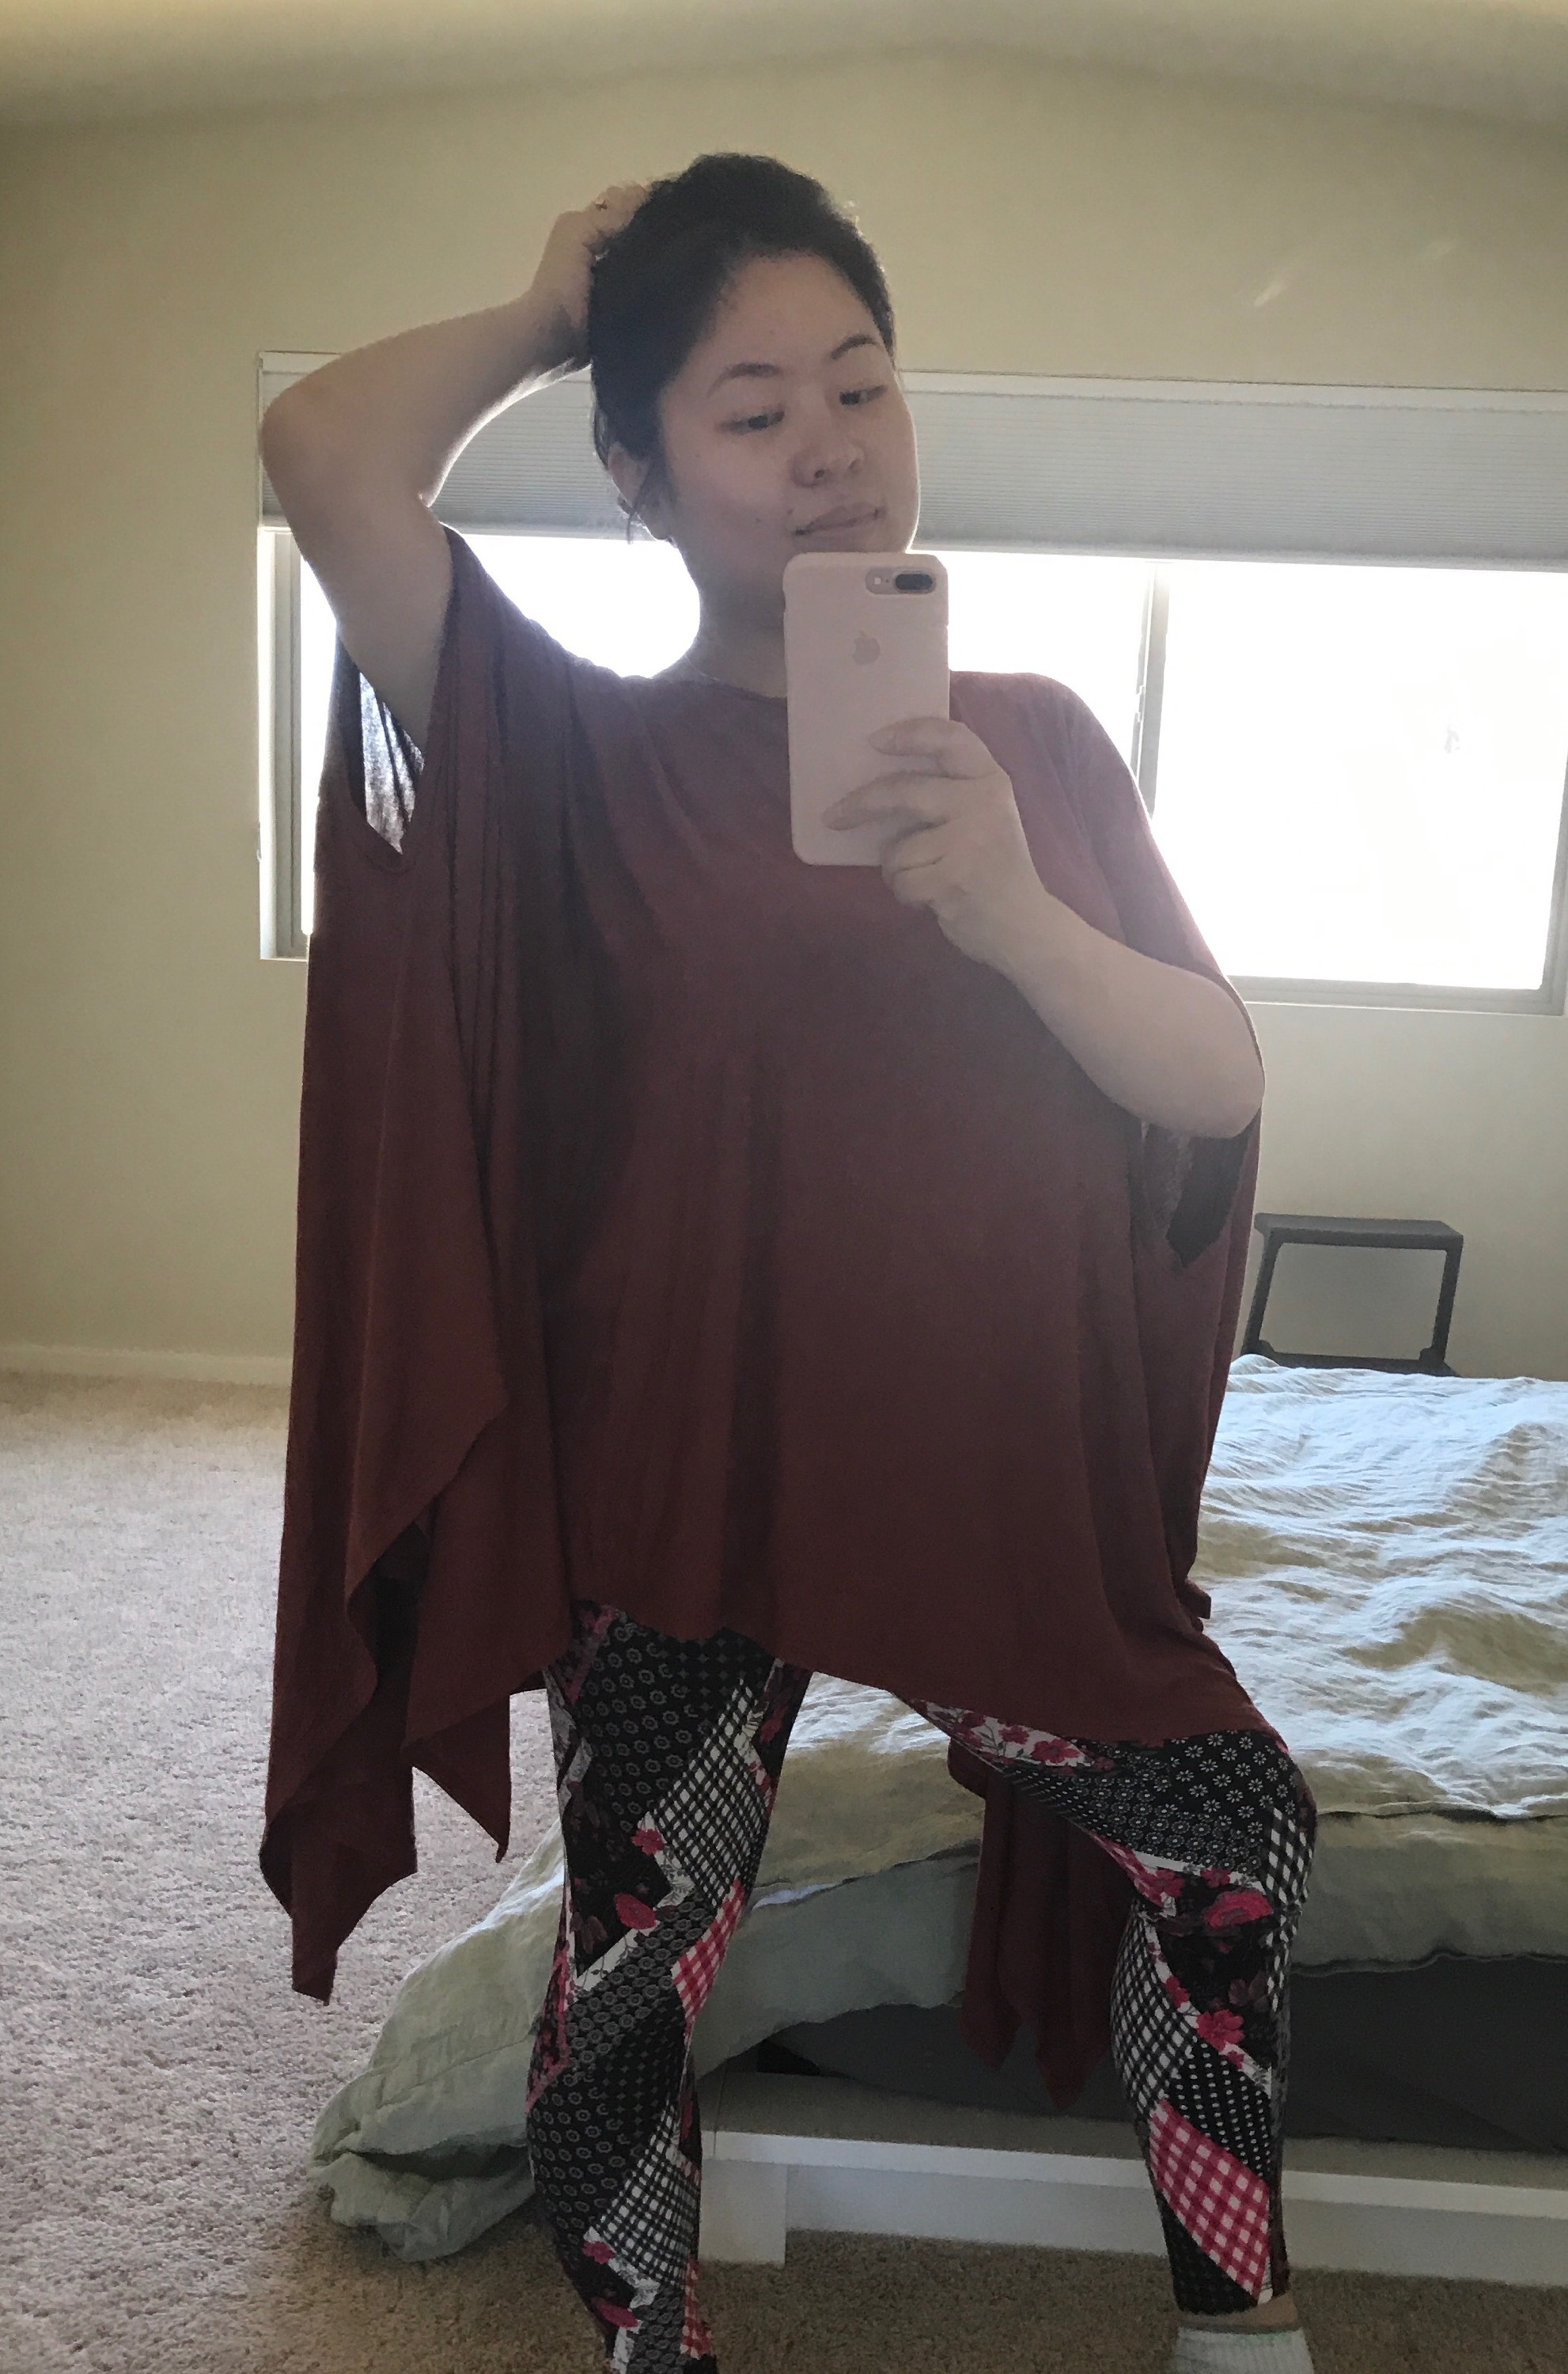 Kat Rockin'AJ - Thanks for stopping by, Vivian! The AJ clothes are super comfy and fashionable. People love the snazzy leggings you'd gifted me, and I could wear the pretty Seattle poncho I bought any day! This outfit really flatters my body type- Kat